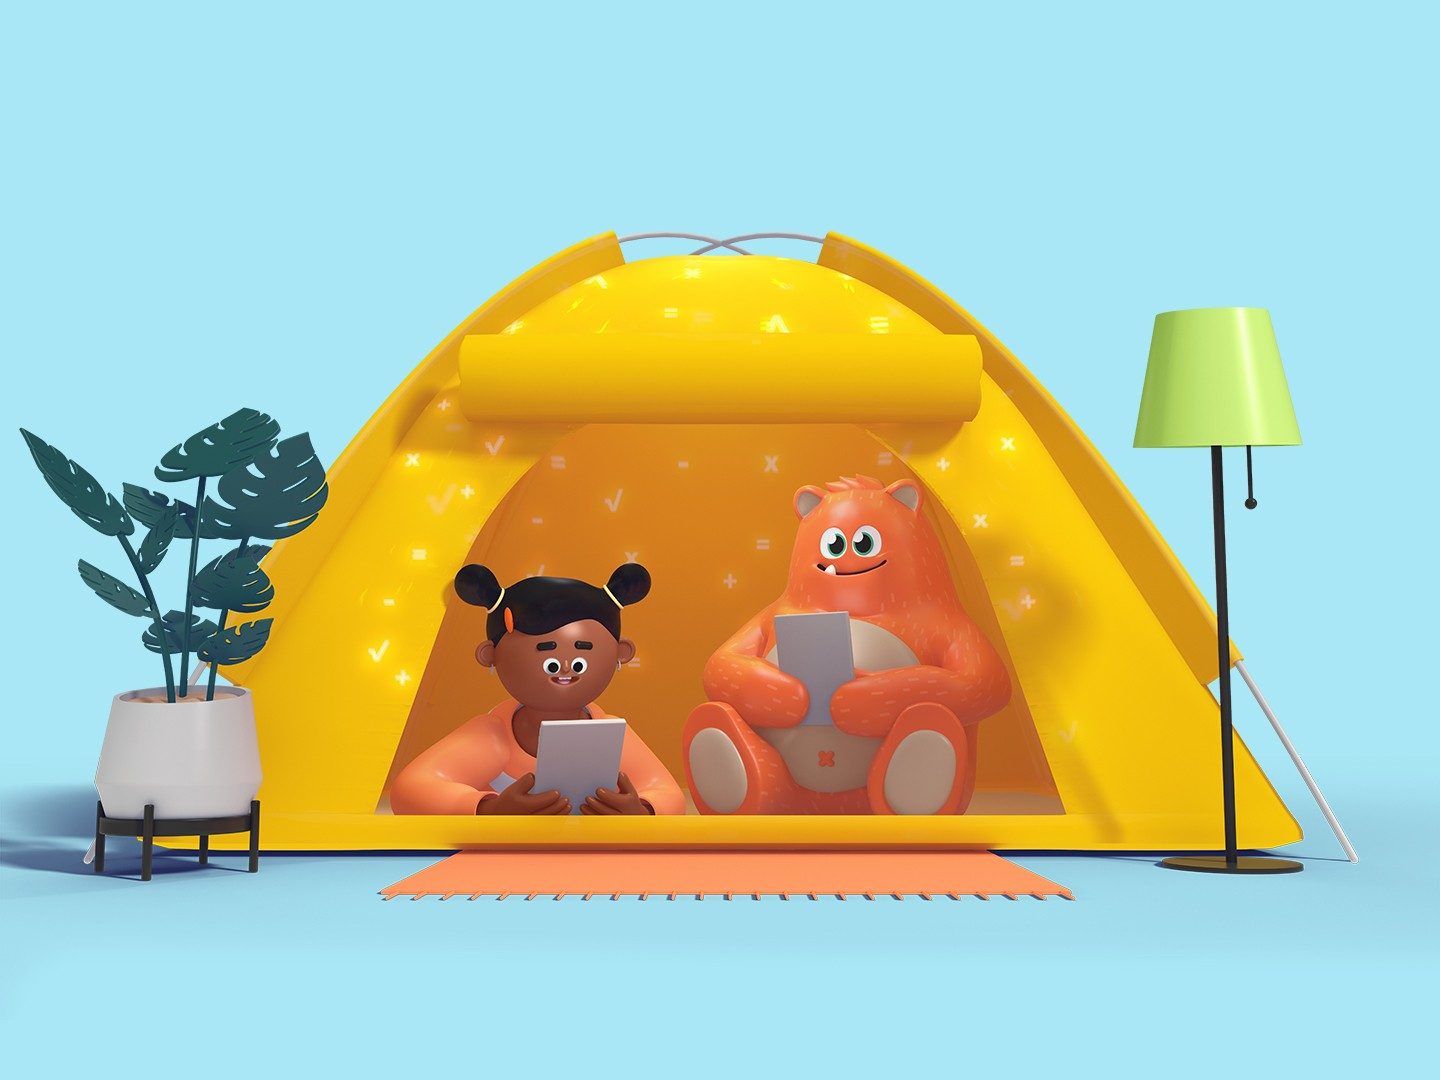 Illustration of Prodigy's mascot, Ed and a child sitting in a tent together and holding tablet devices.